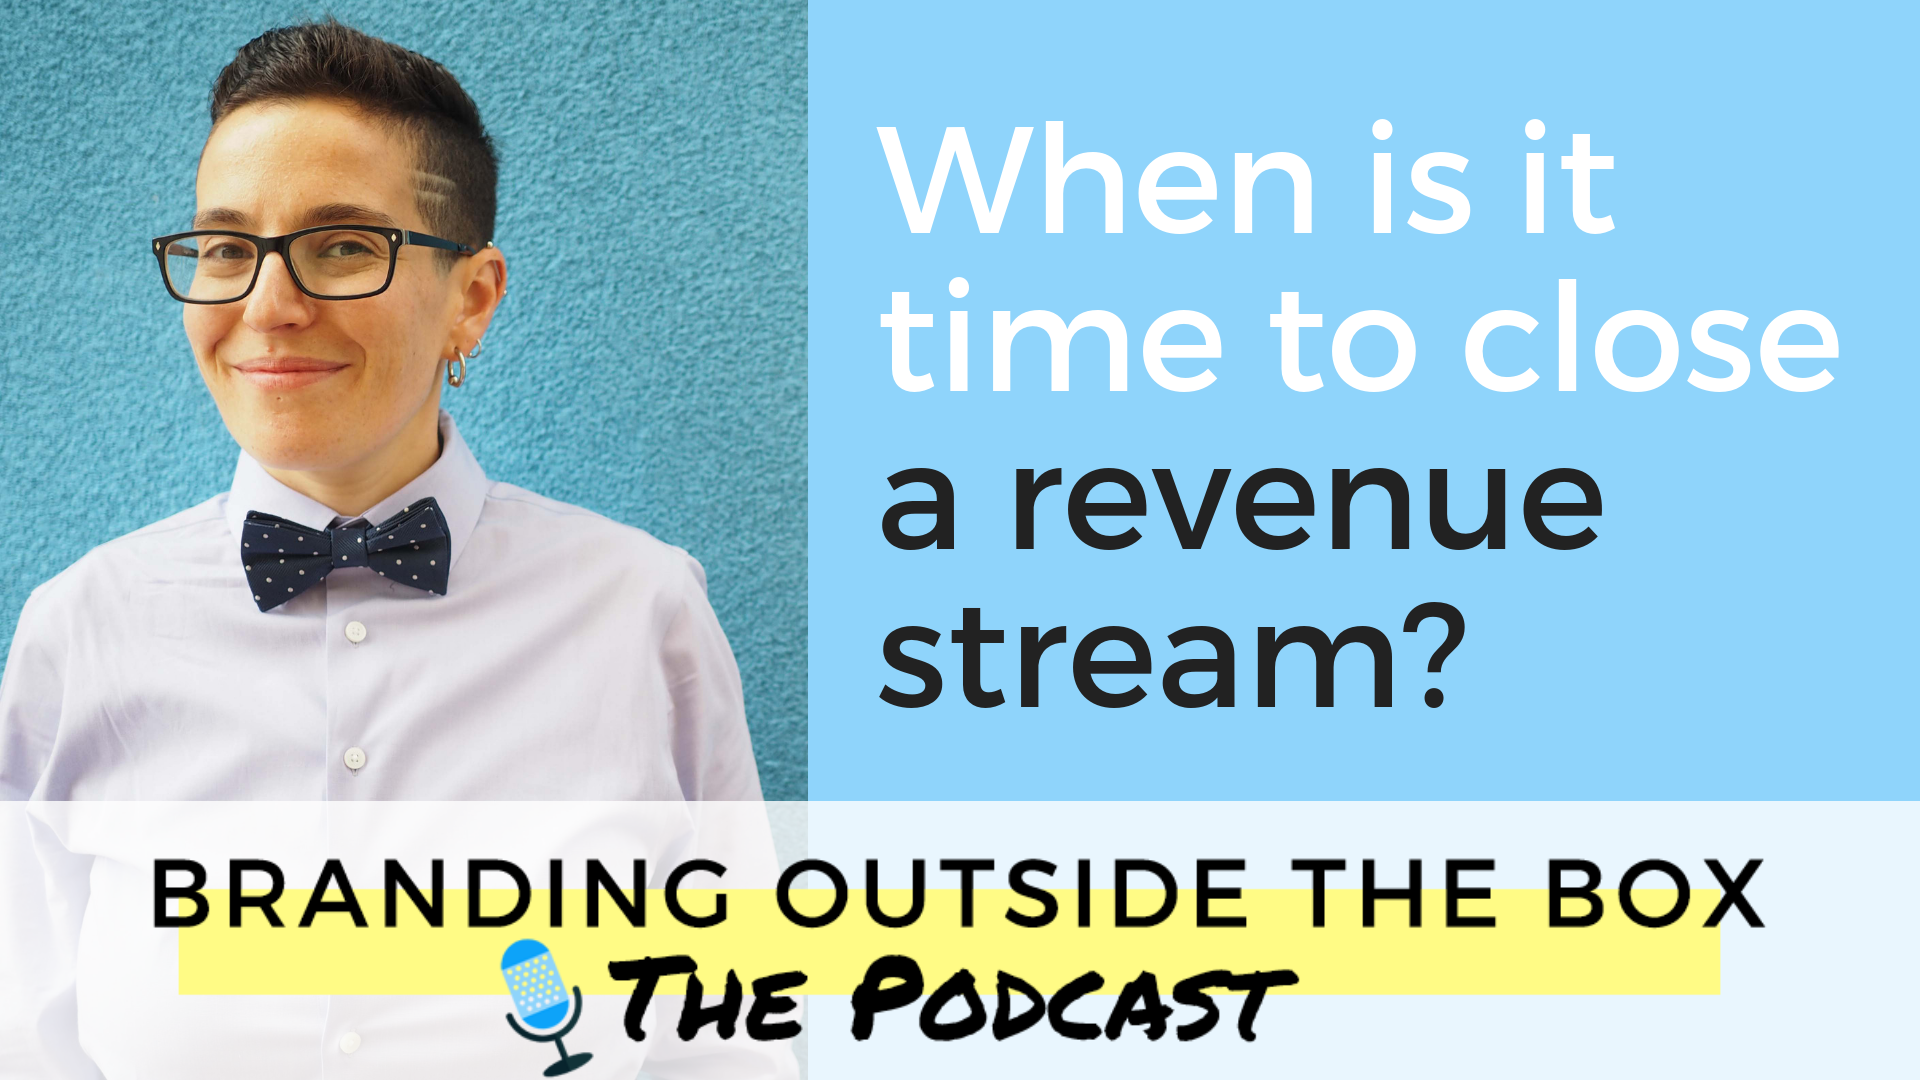 When is it time to close a revenue stream?